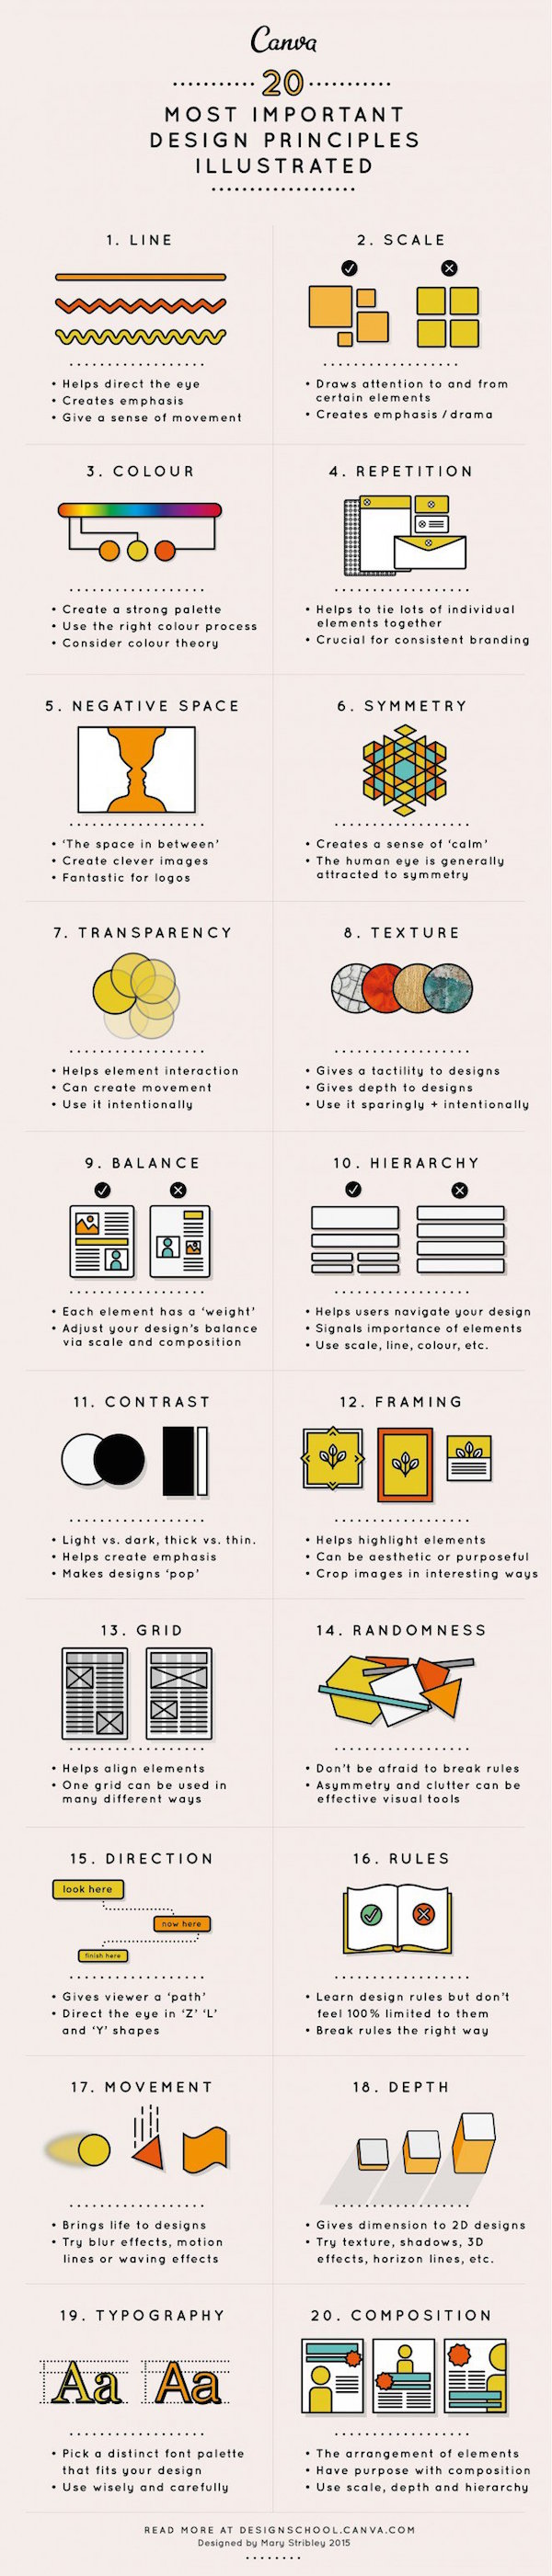 Graphic Designers: Cheat Sheets That Simplify Design Elements, Print Terms, More